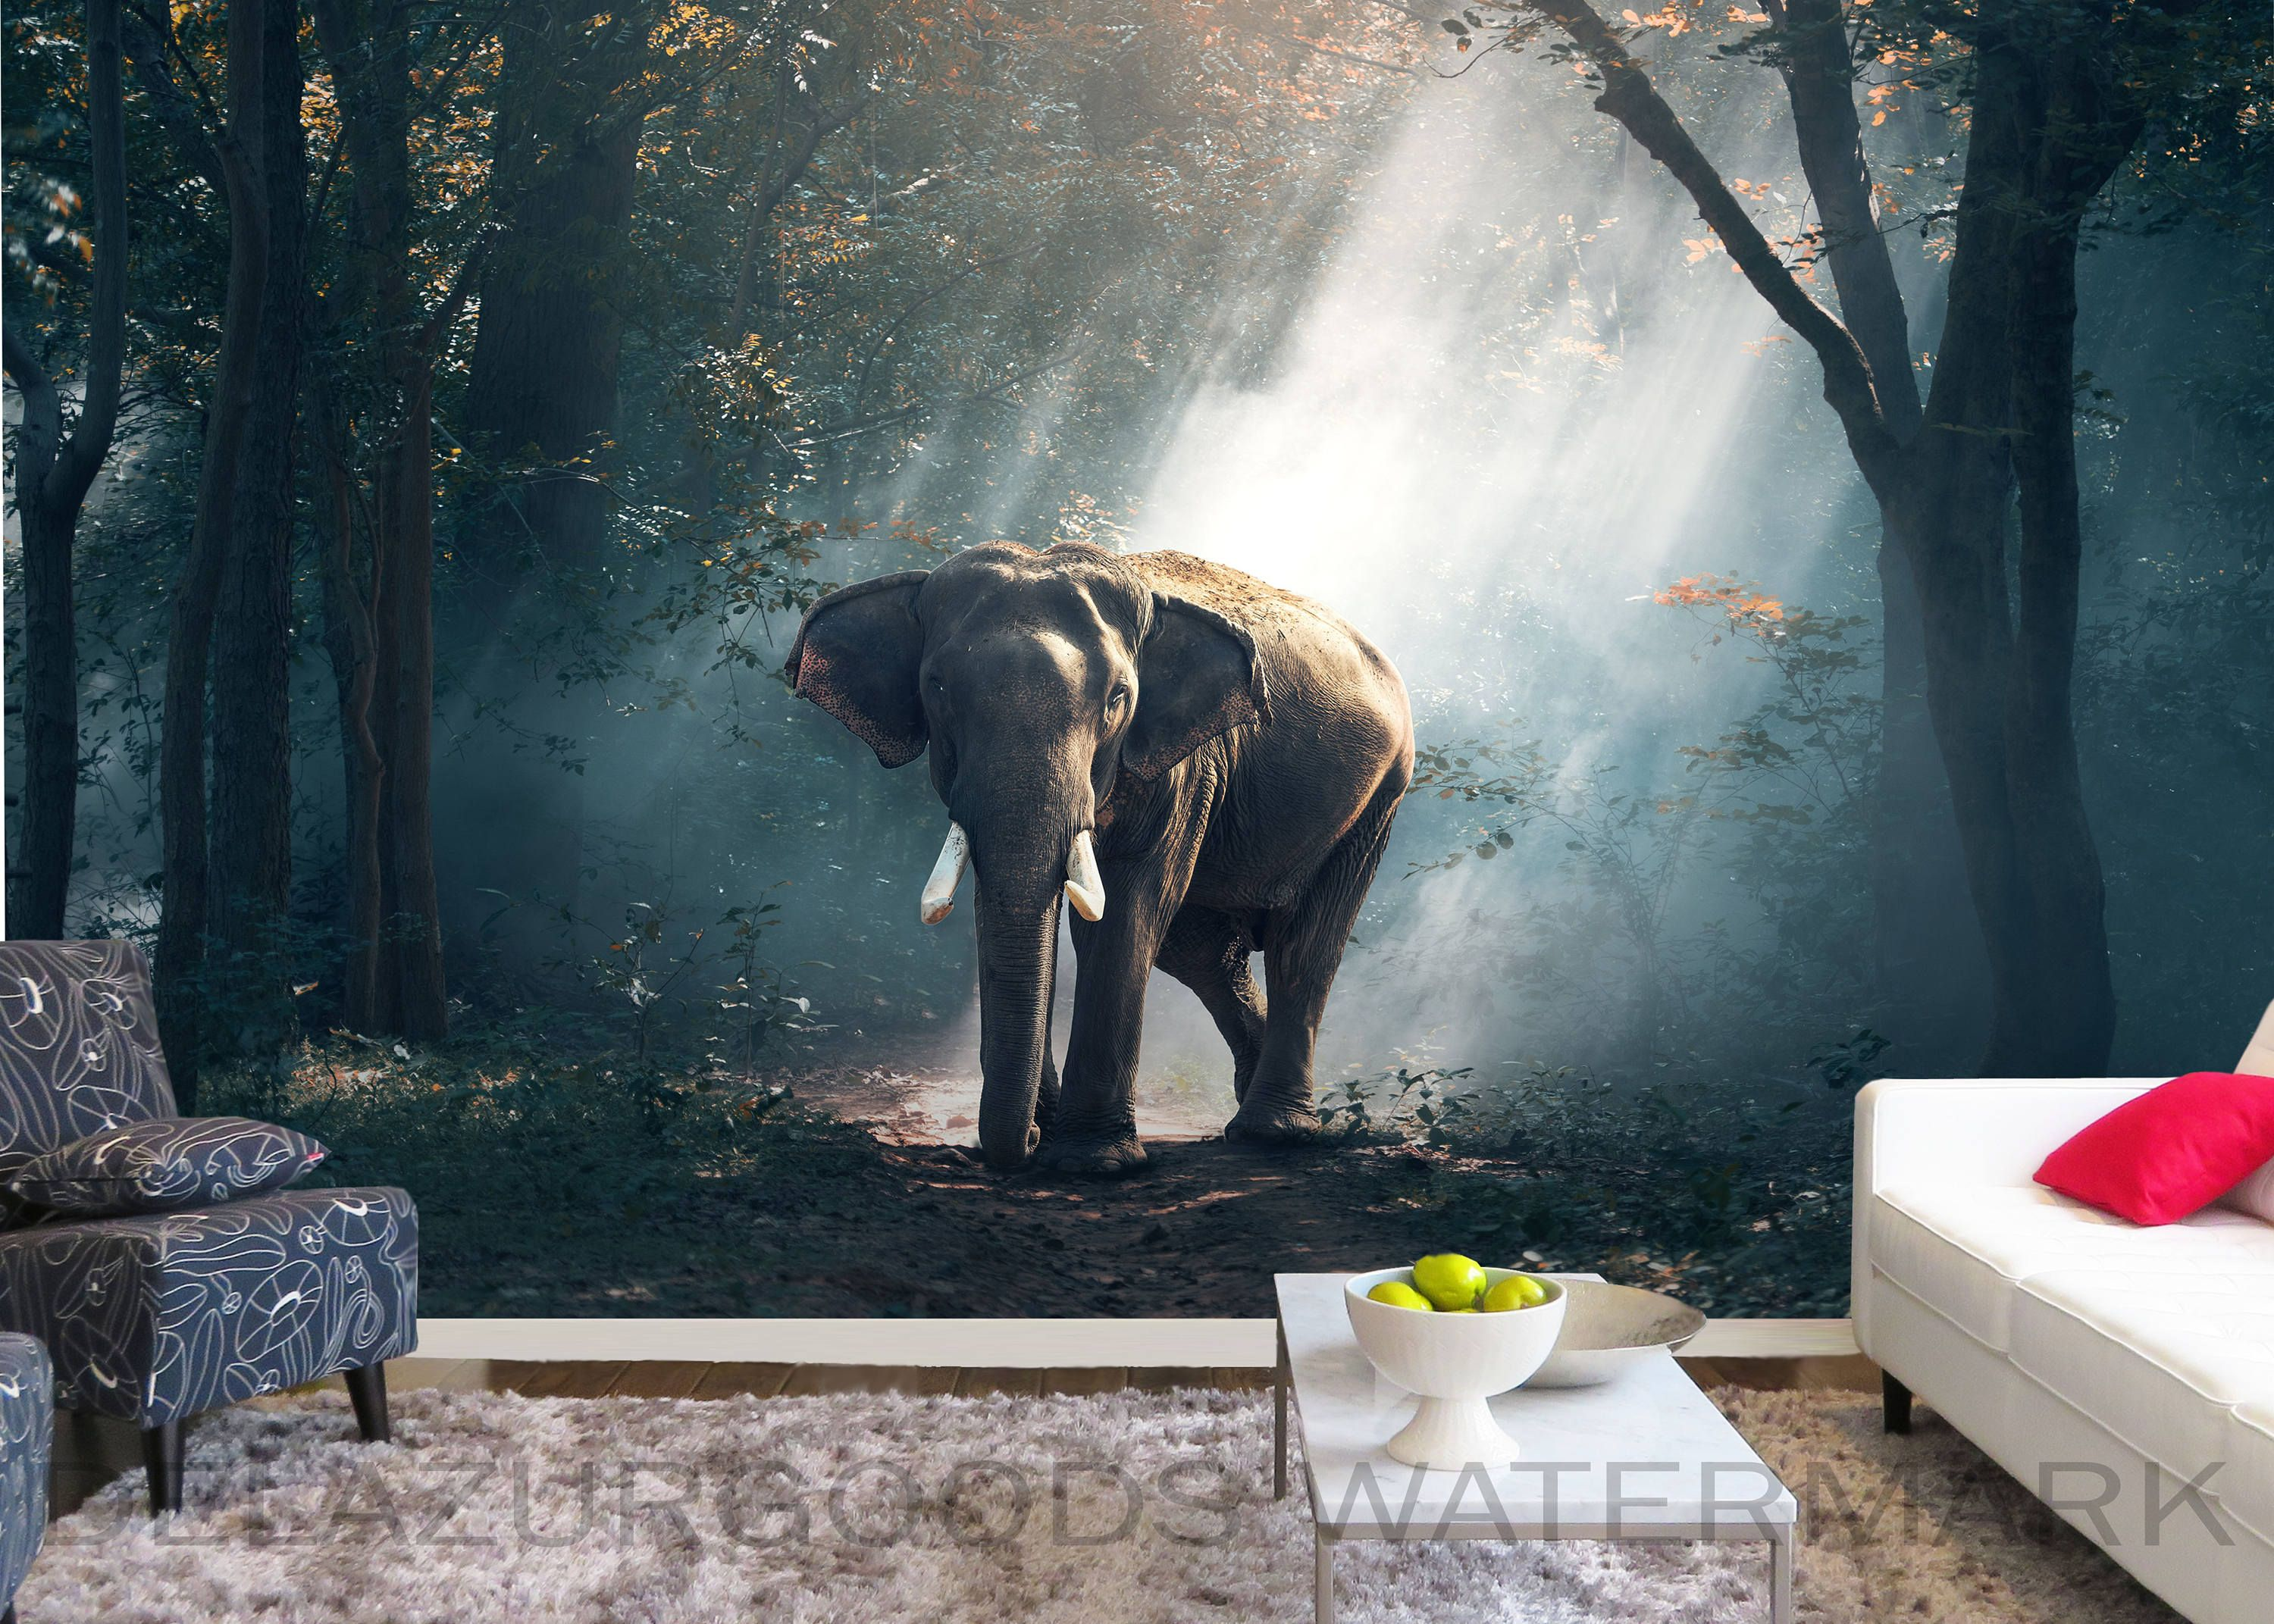 Elephant Wallpaper Peel And Stick Removable Wall Mural Etsy Elephant Wallpaper Removable Wall Murals Wallpaper